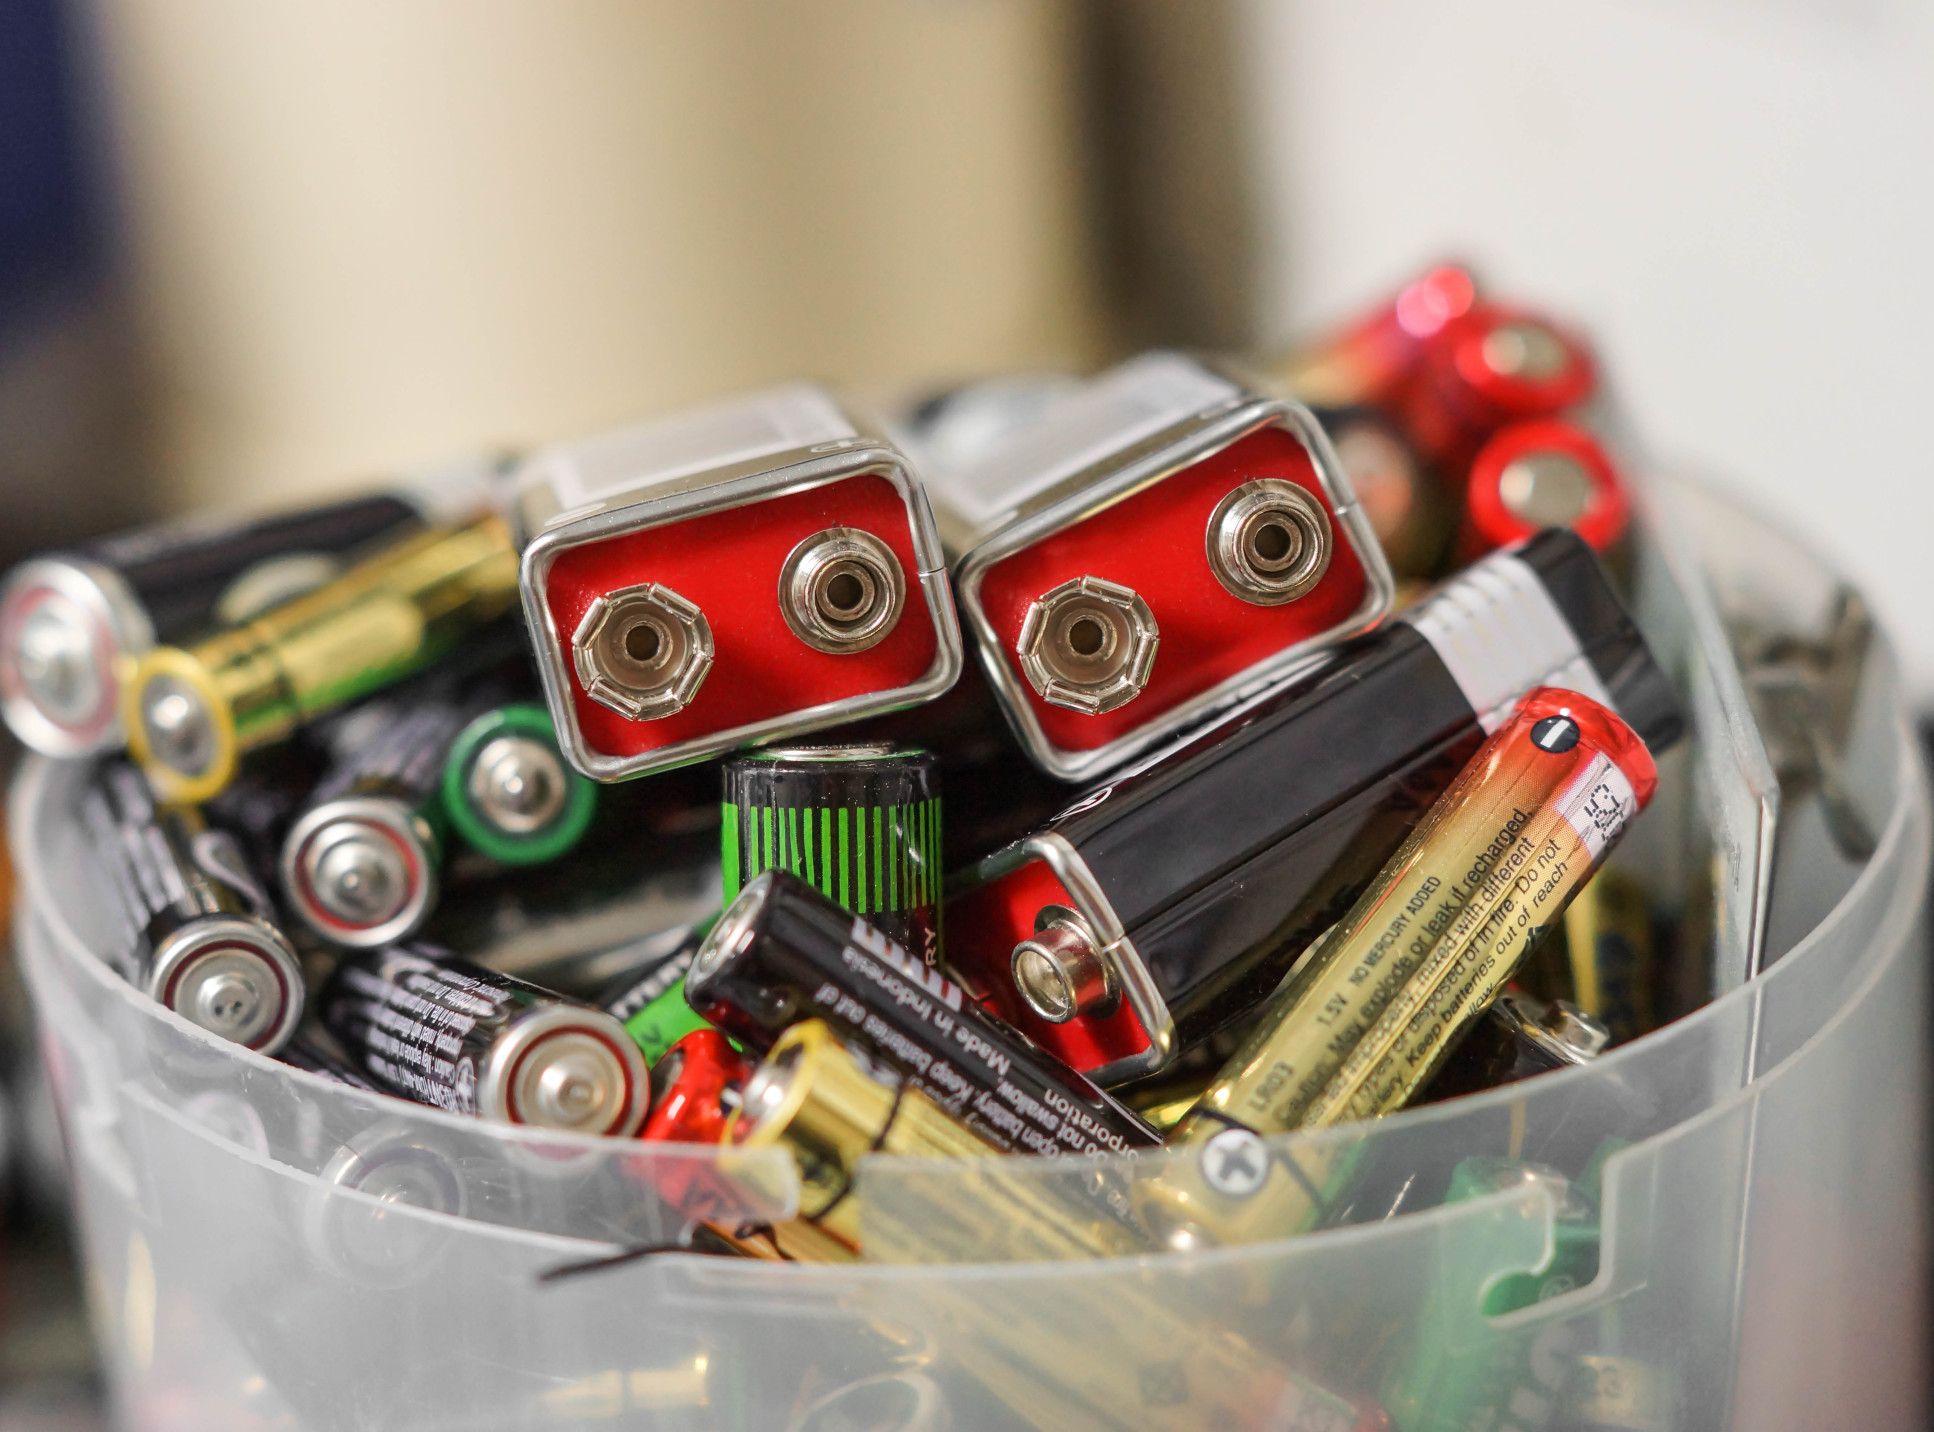 A collection of used batteries